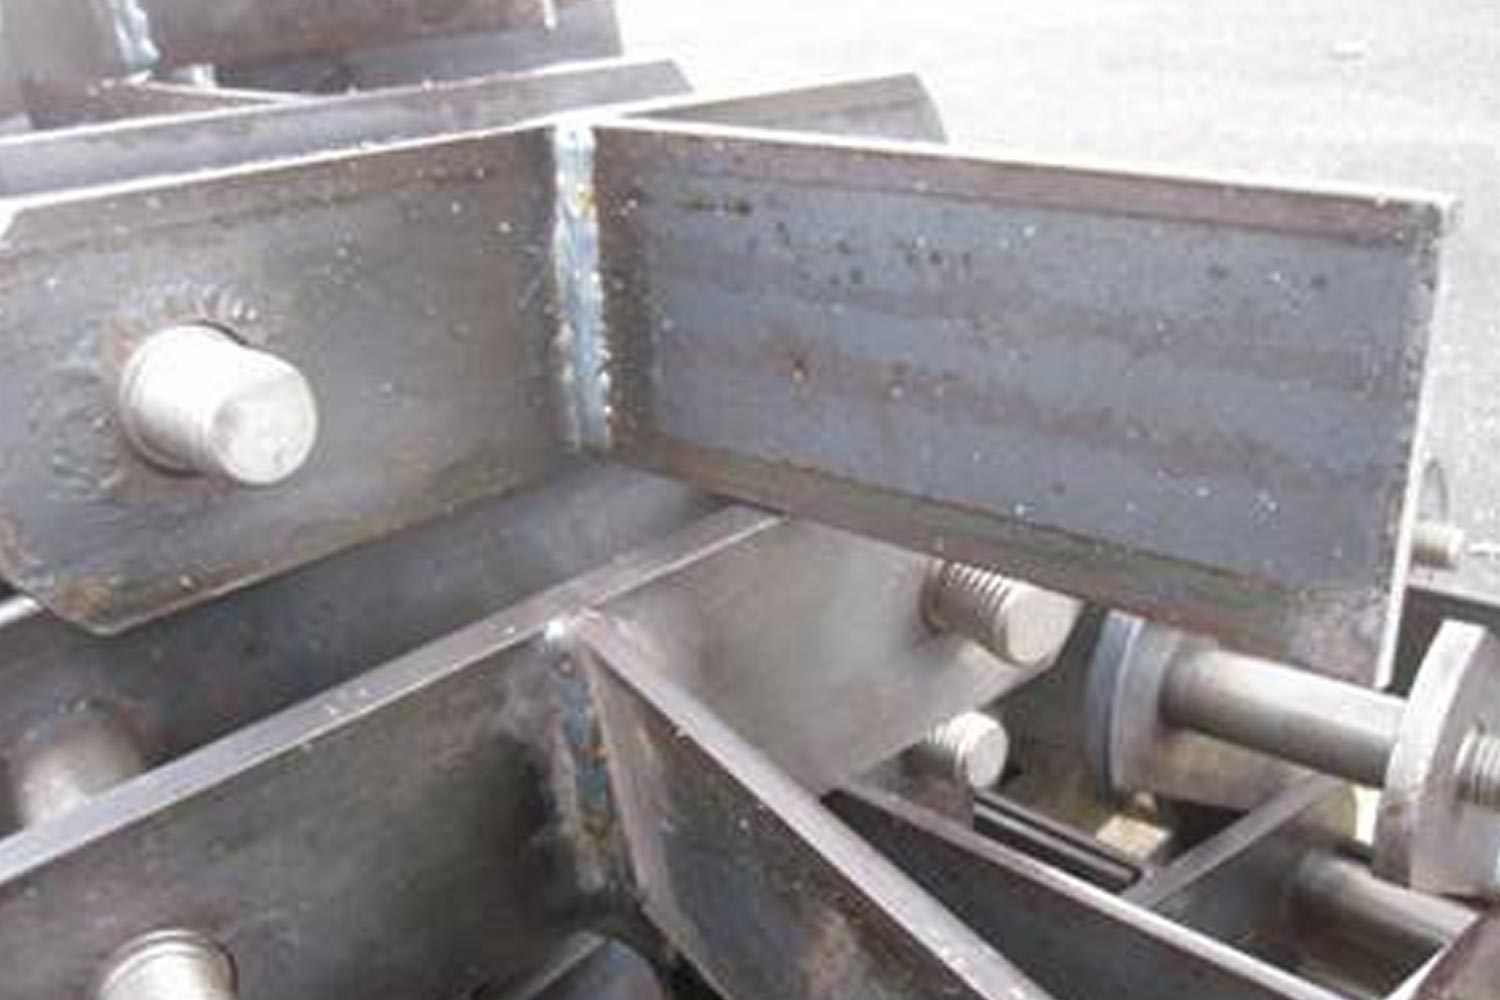 Attachment types - Welded